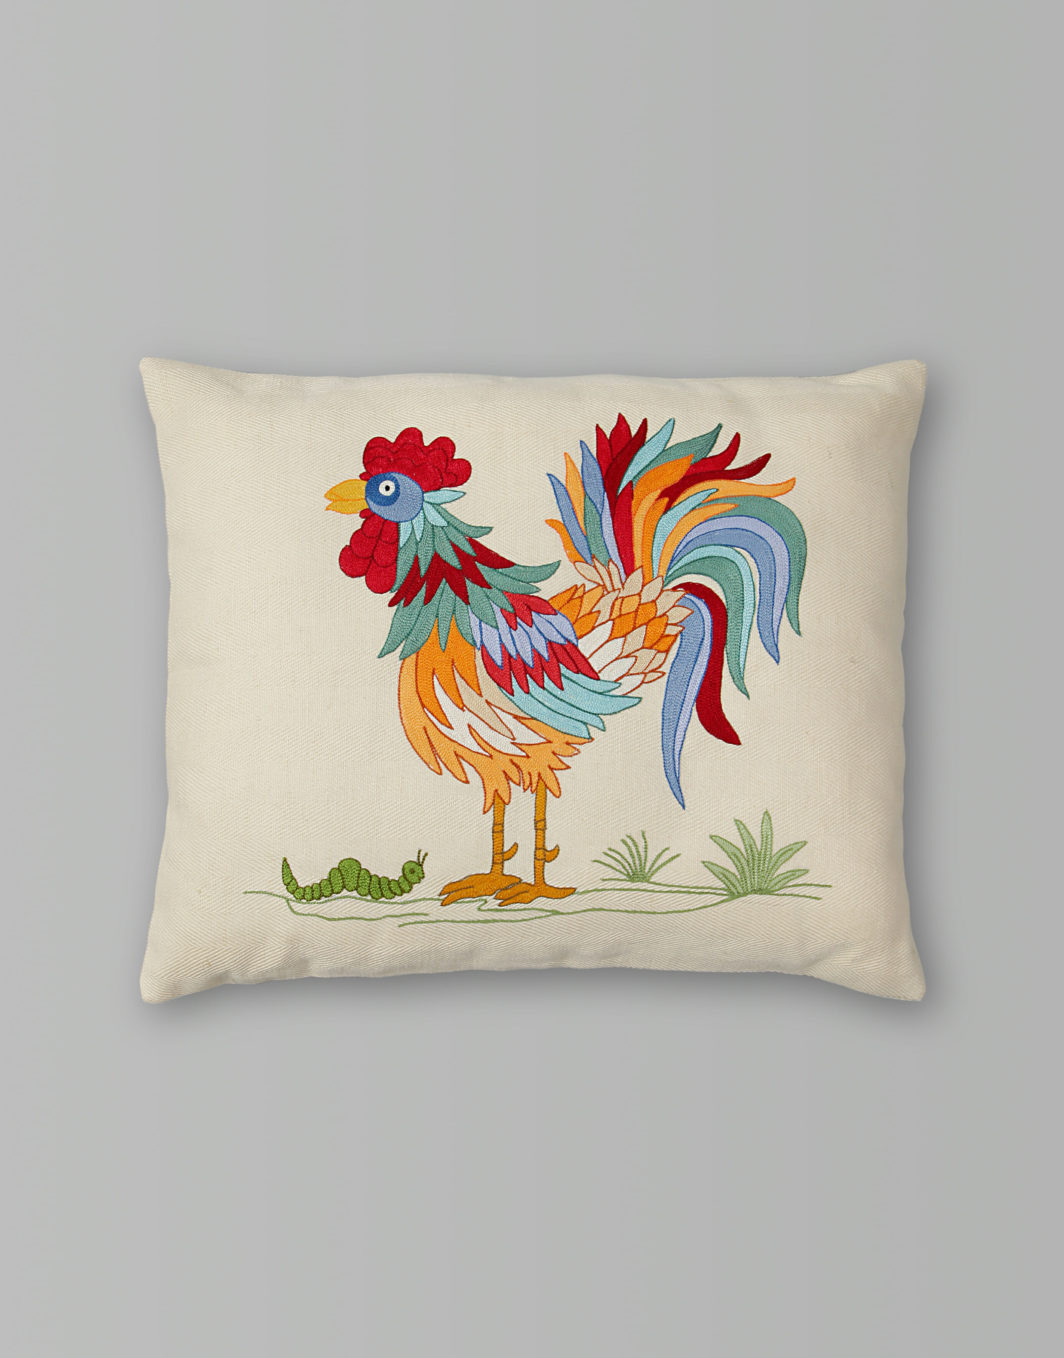 ROOSTER CUSHION